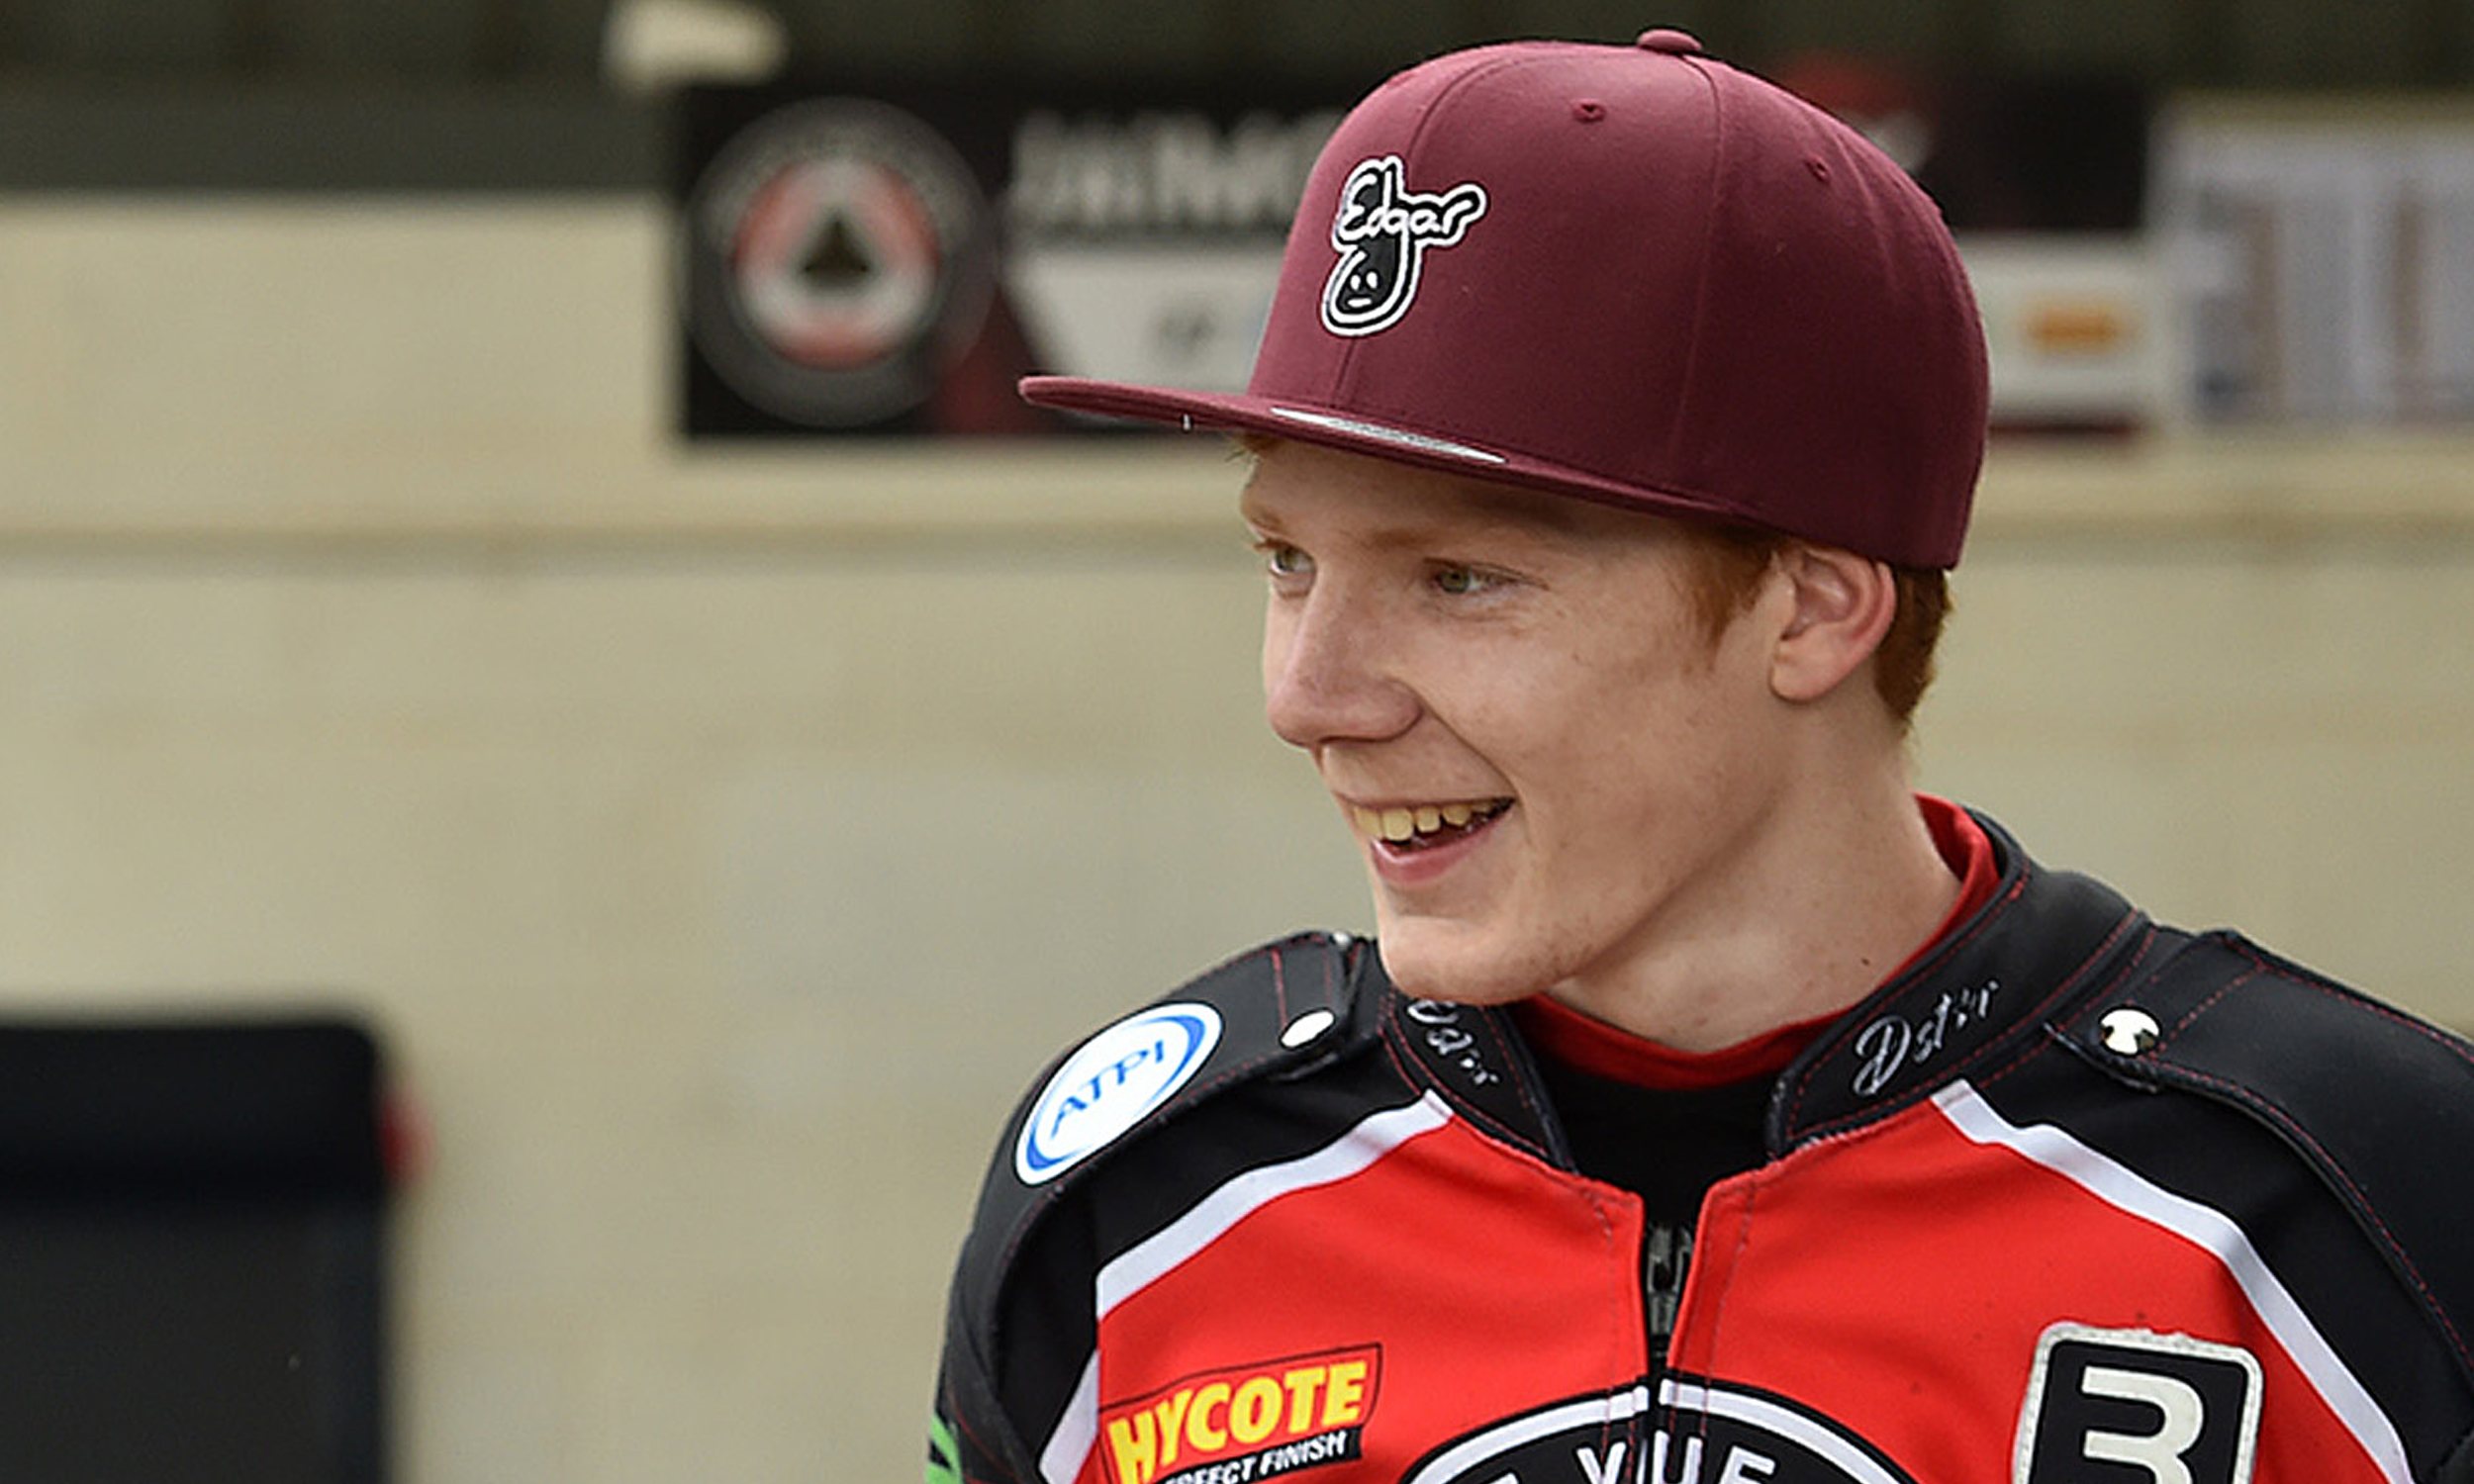 The National Speedway Stadium has a new track record holder in the form of Dan Bewley